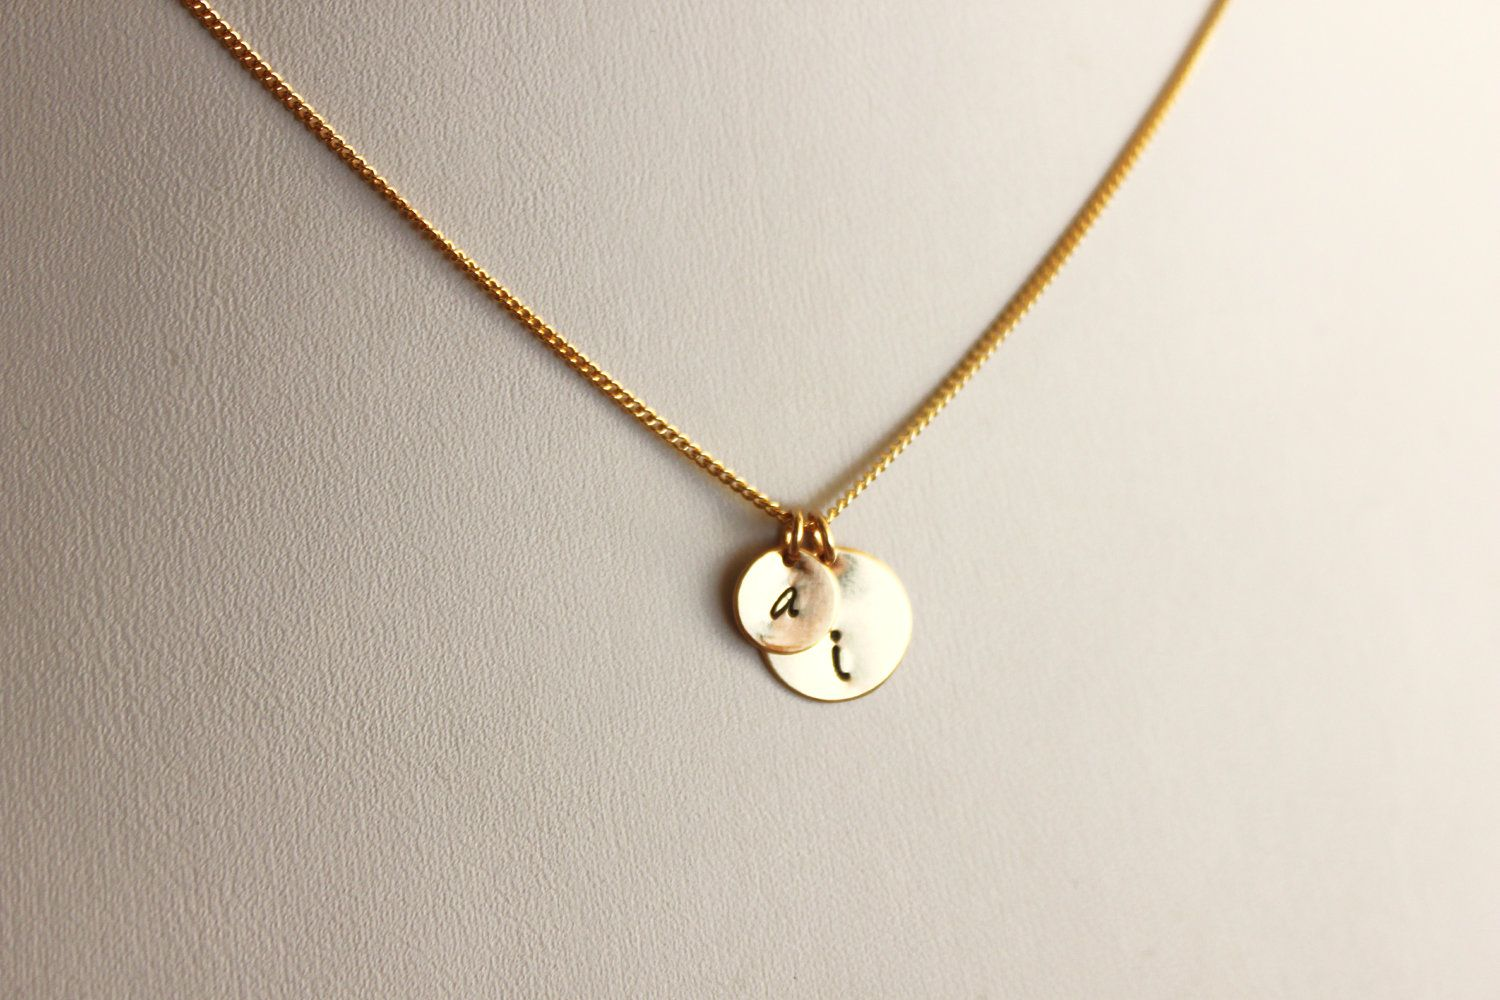 Double initial necklace from taylormoseley i want one is gold and double initial necklace from taylormoseley i want one is gold and one in silver mozeypictures Images